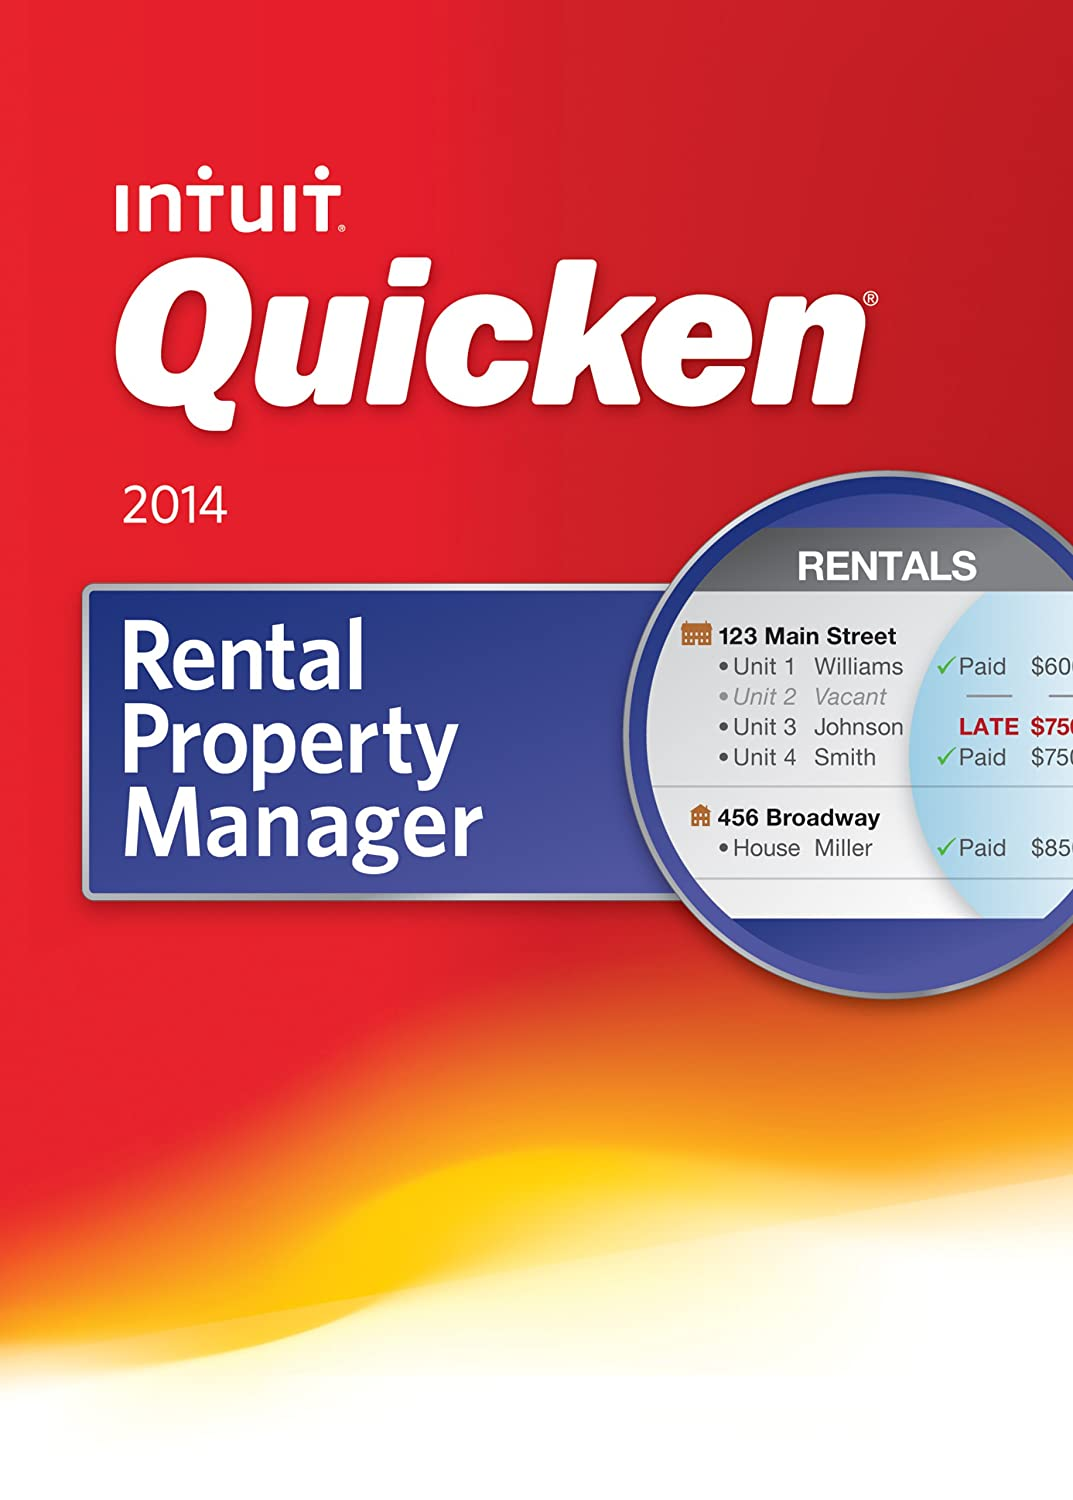 Intuit quicken rental property manager 2009 sale